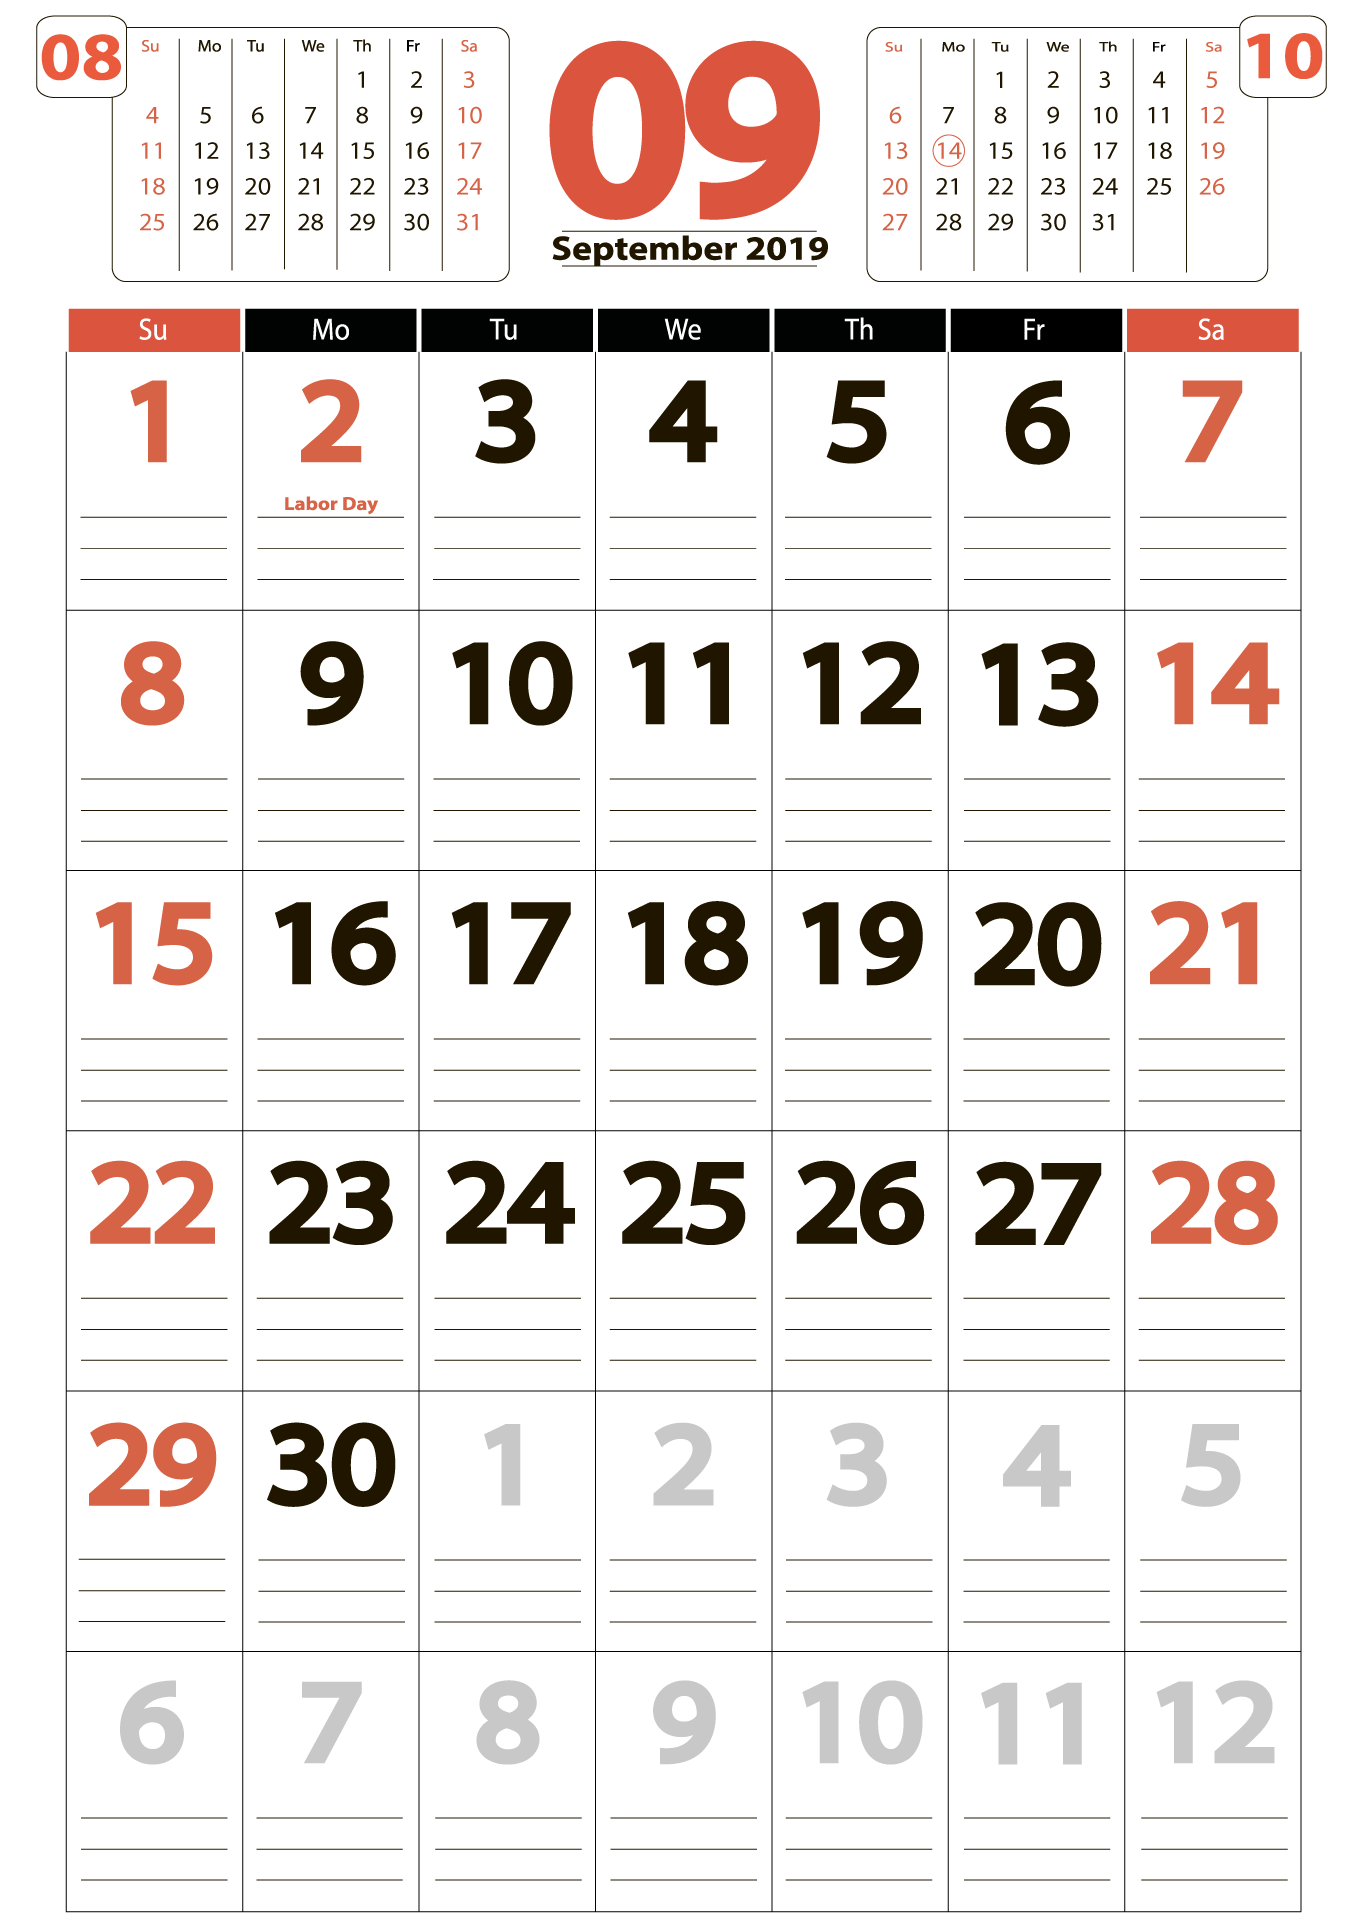 Download calendar 09 2019